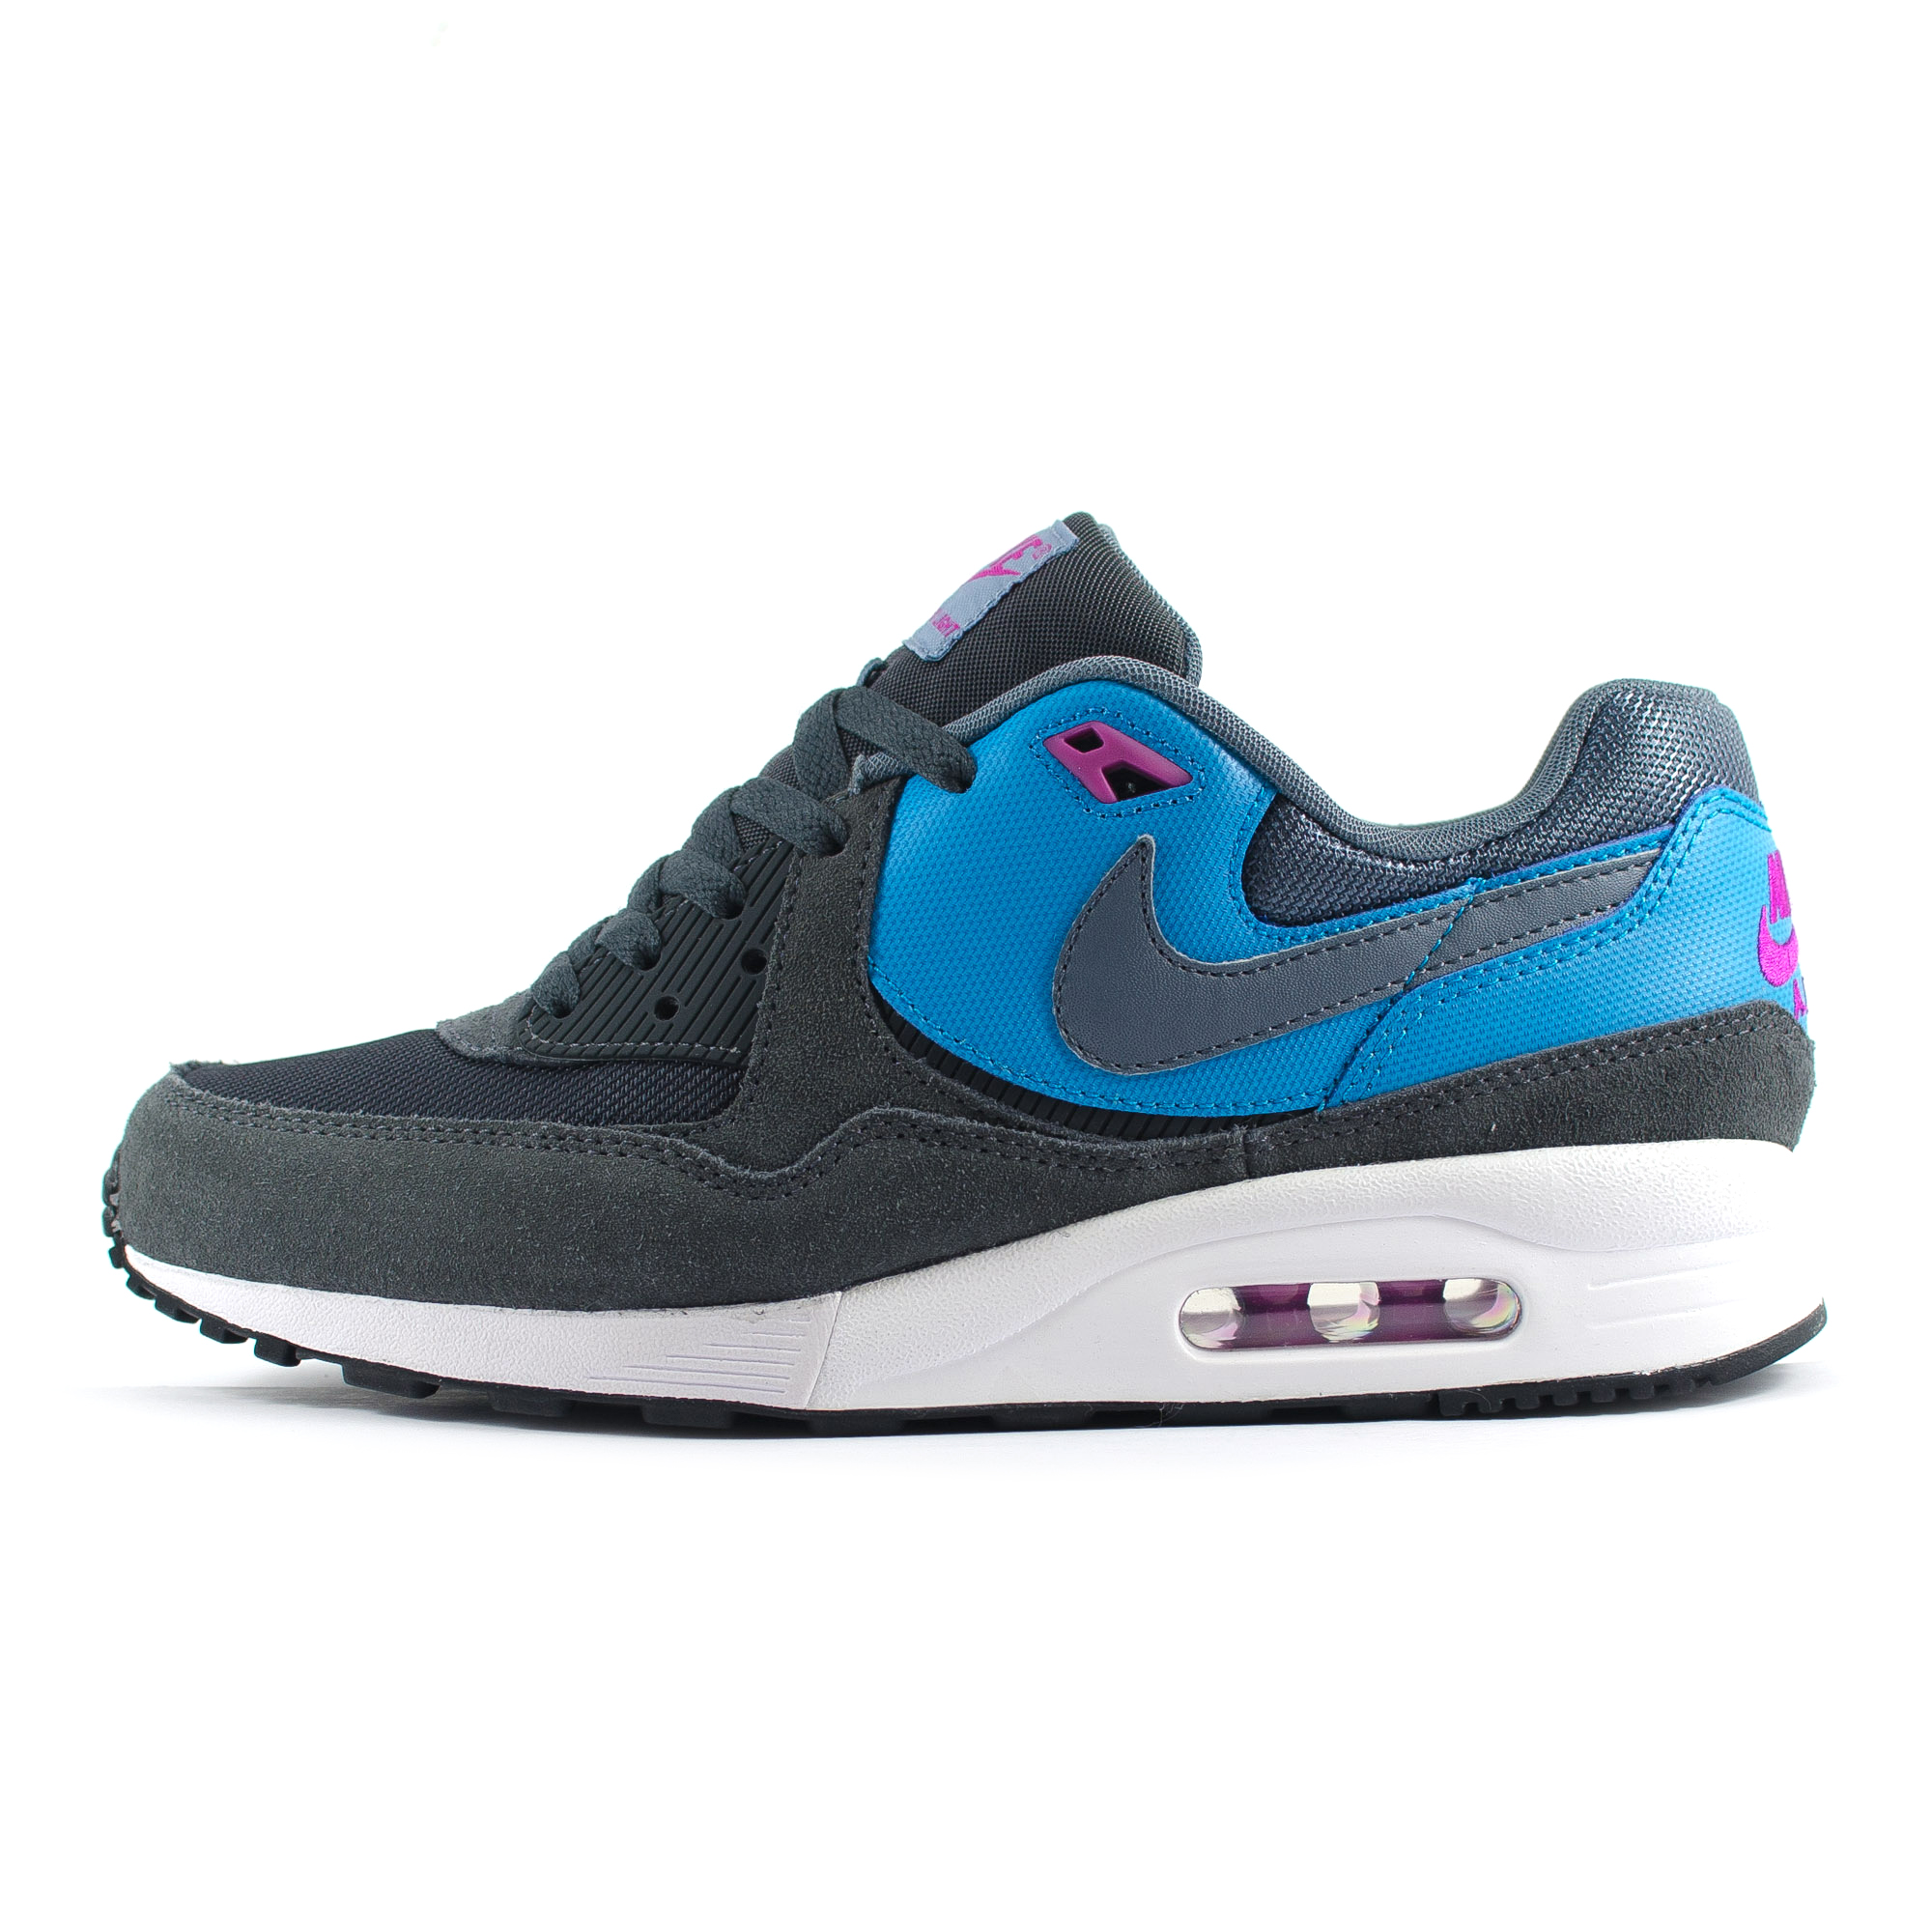 mens nike air max light essential dark grey blue black trainers 631722 014 ebay. Black Bedroom Furniture Sets. Home Design Ideas